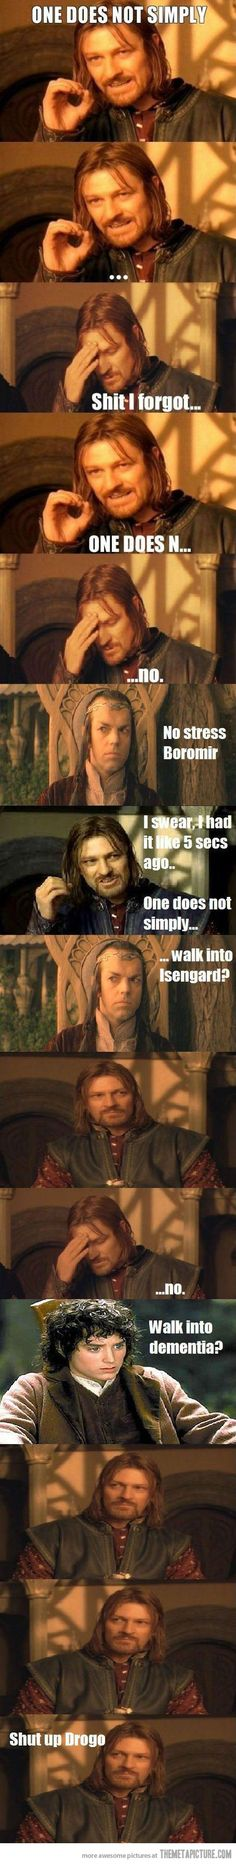 funny-one-does-not-simple-Boromir-meme